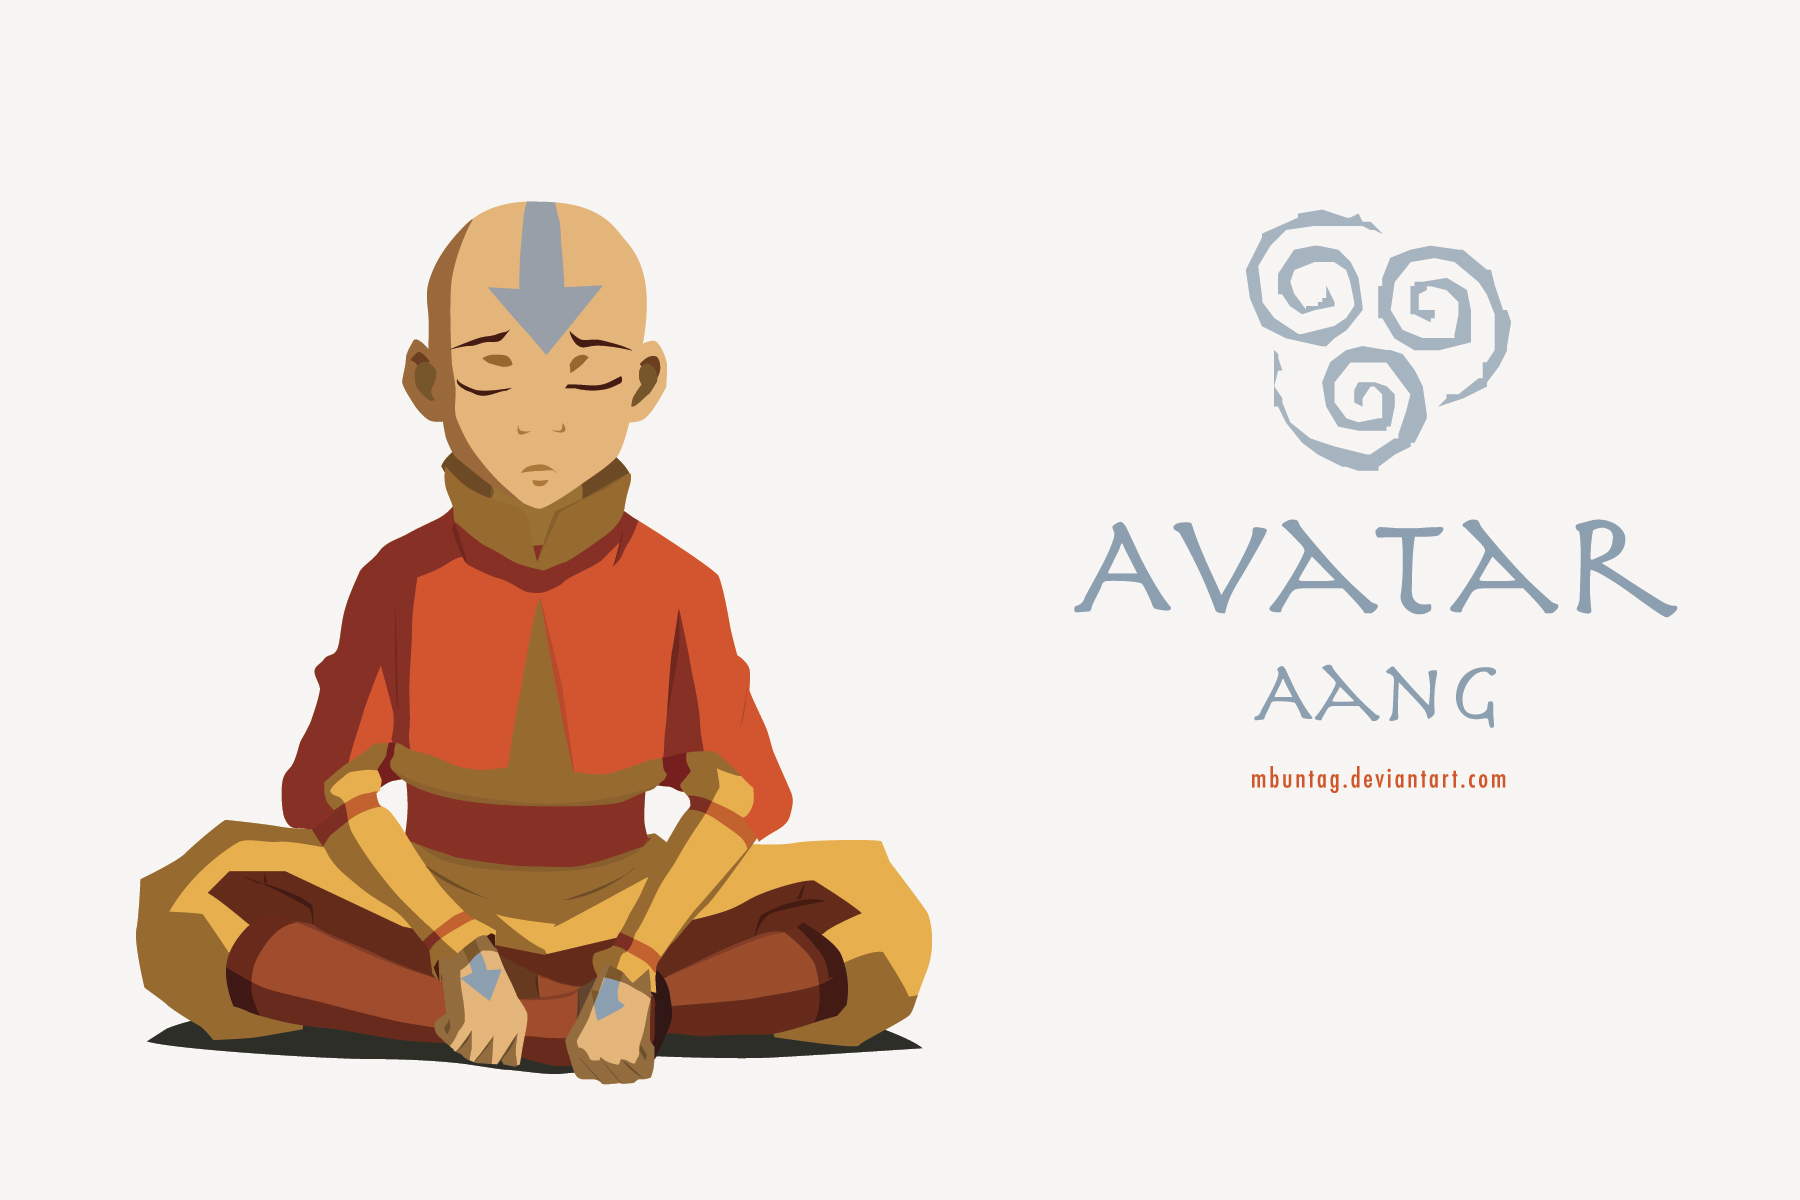 Aang Avatar - Wallpapers And Pictures